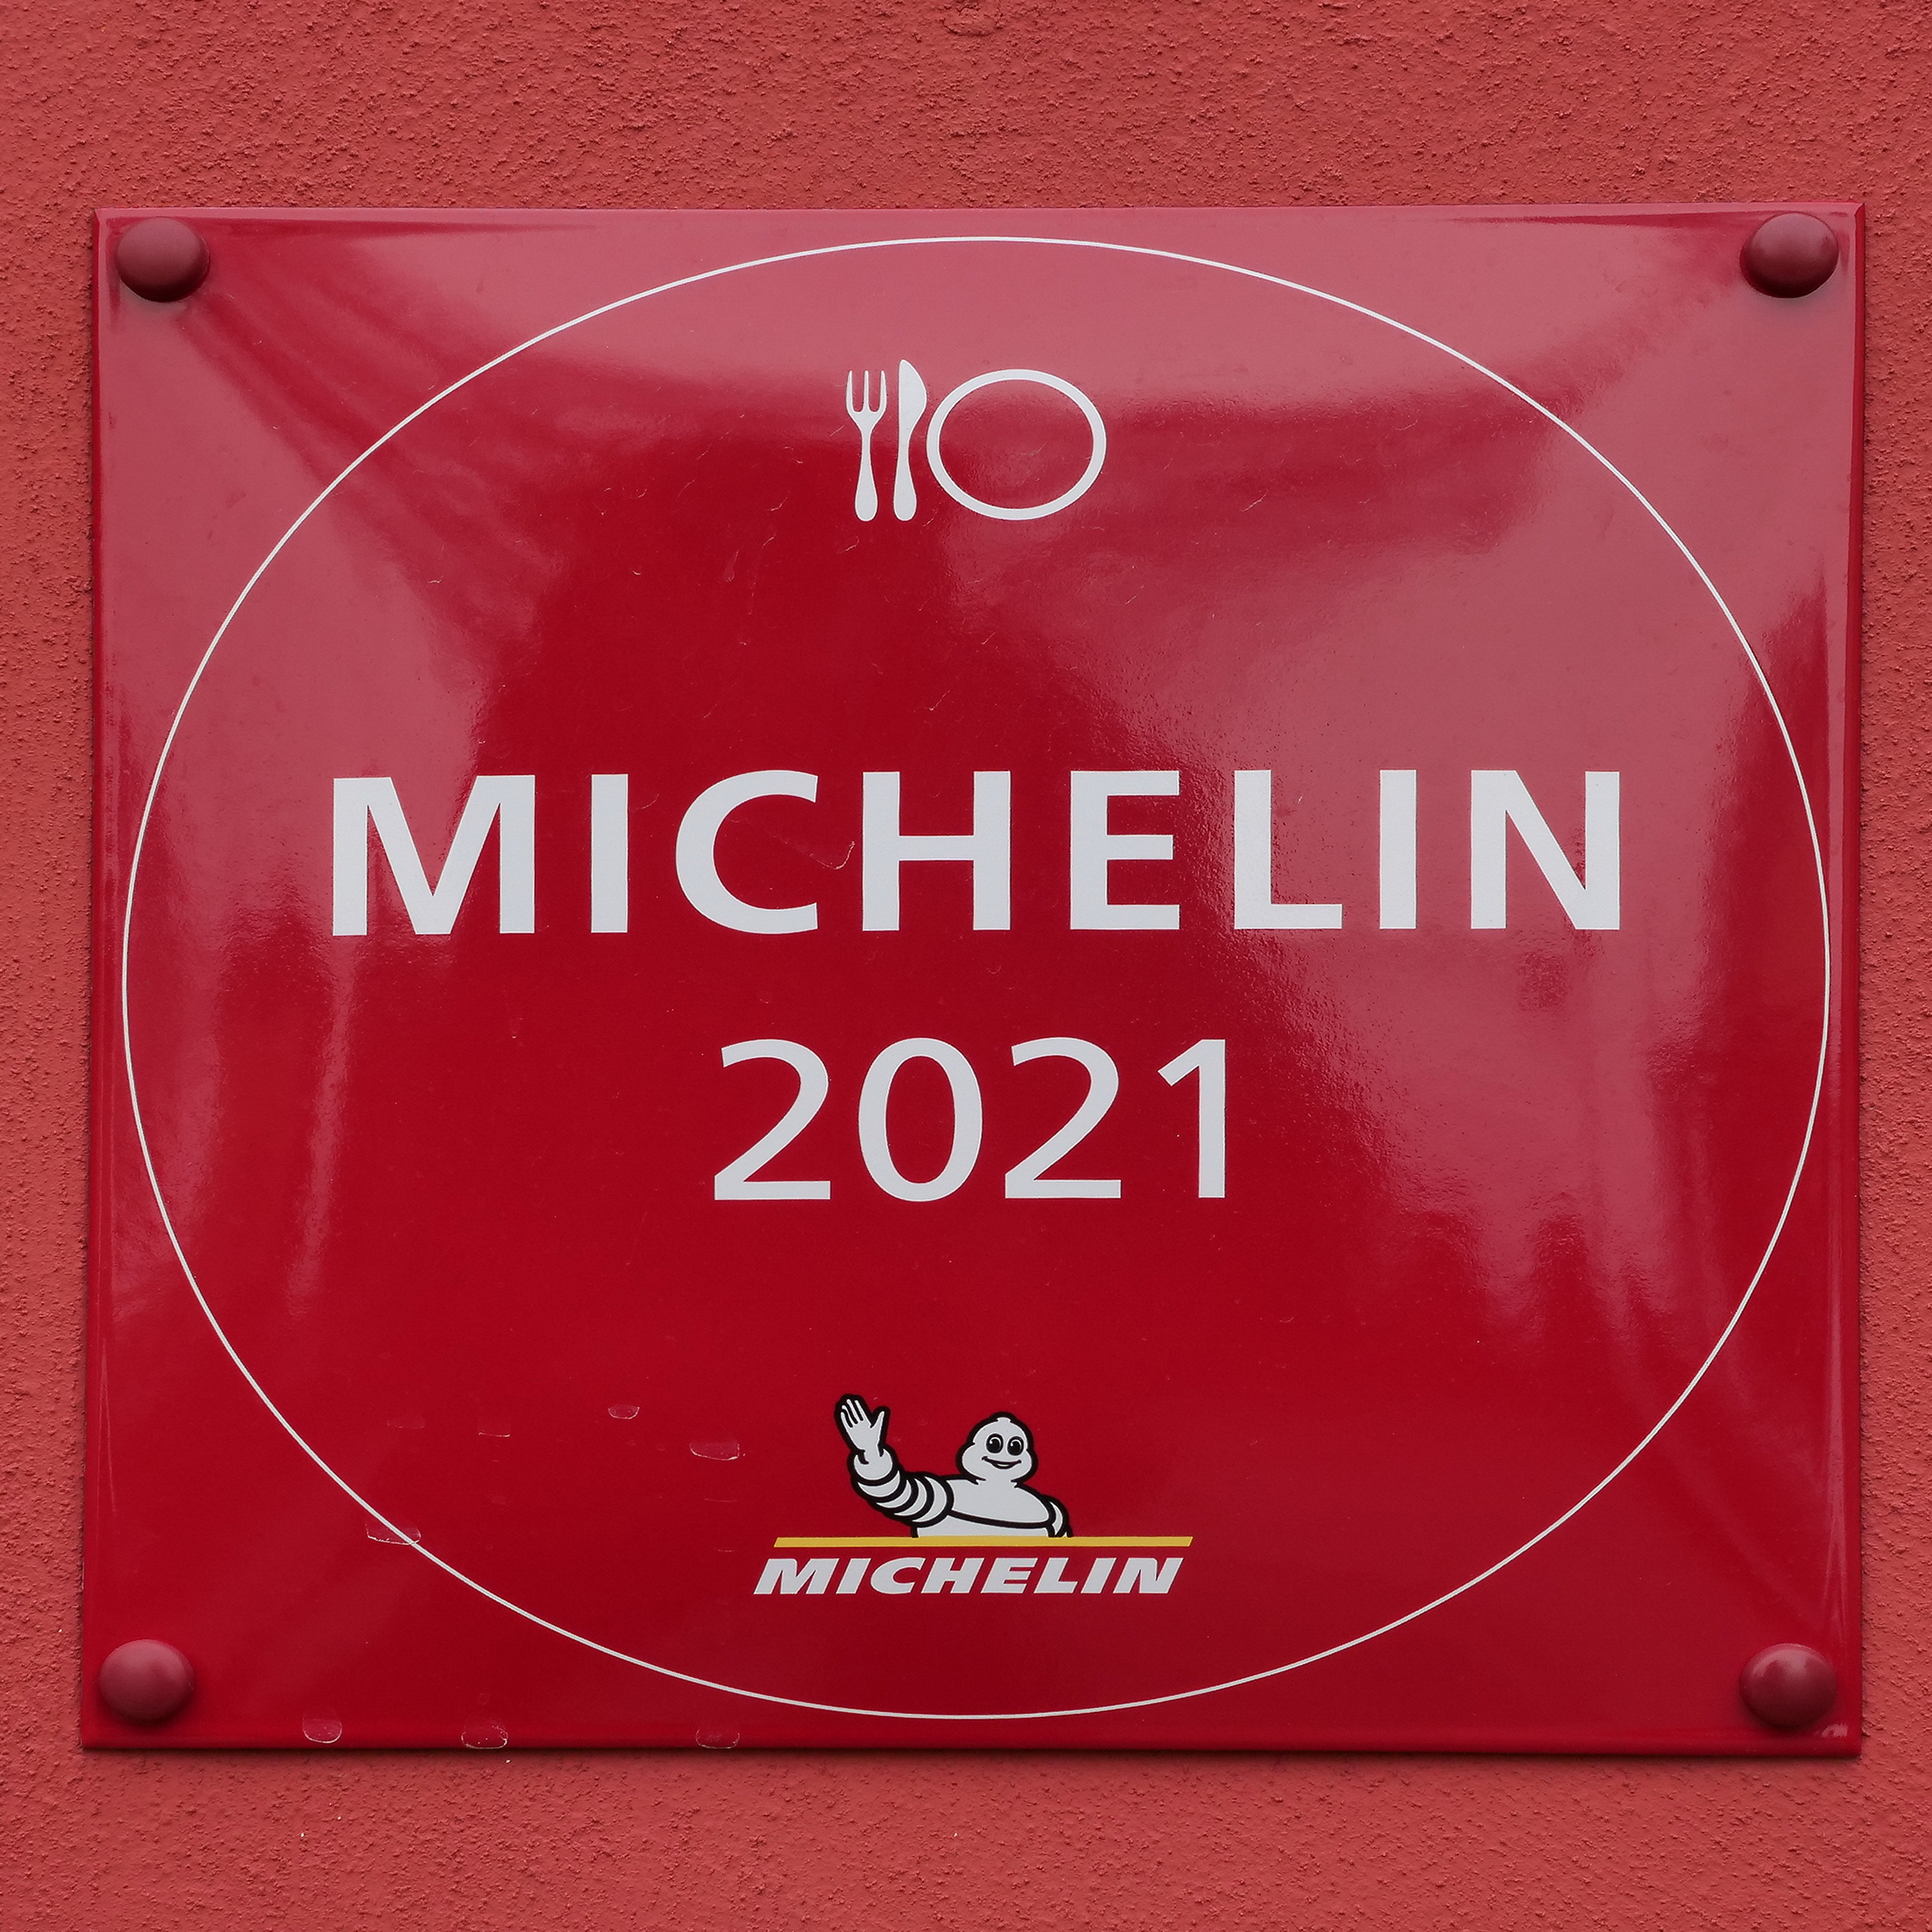 Michelin restaurant symbol on a wall. Michelin guides are a series of guide books published by the Michelin for more than a century